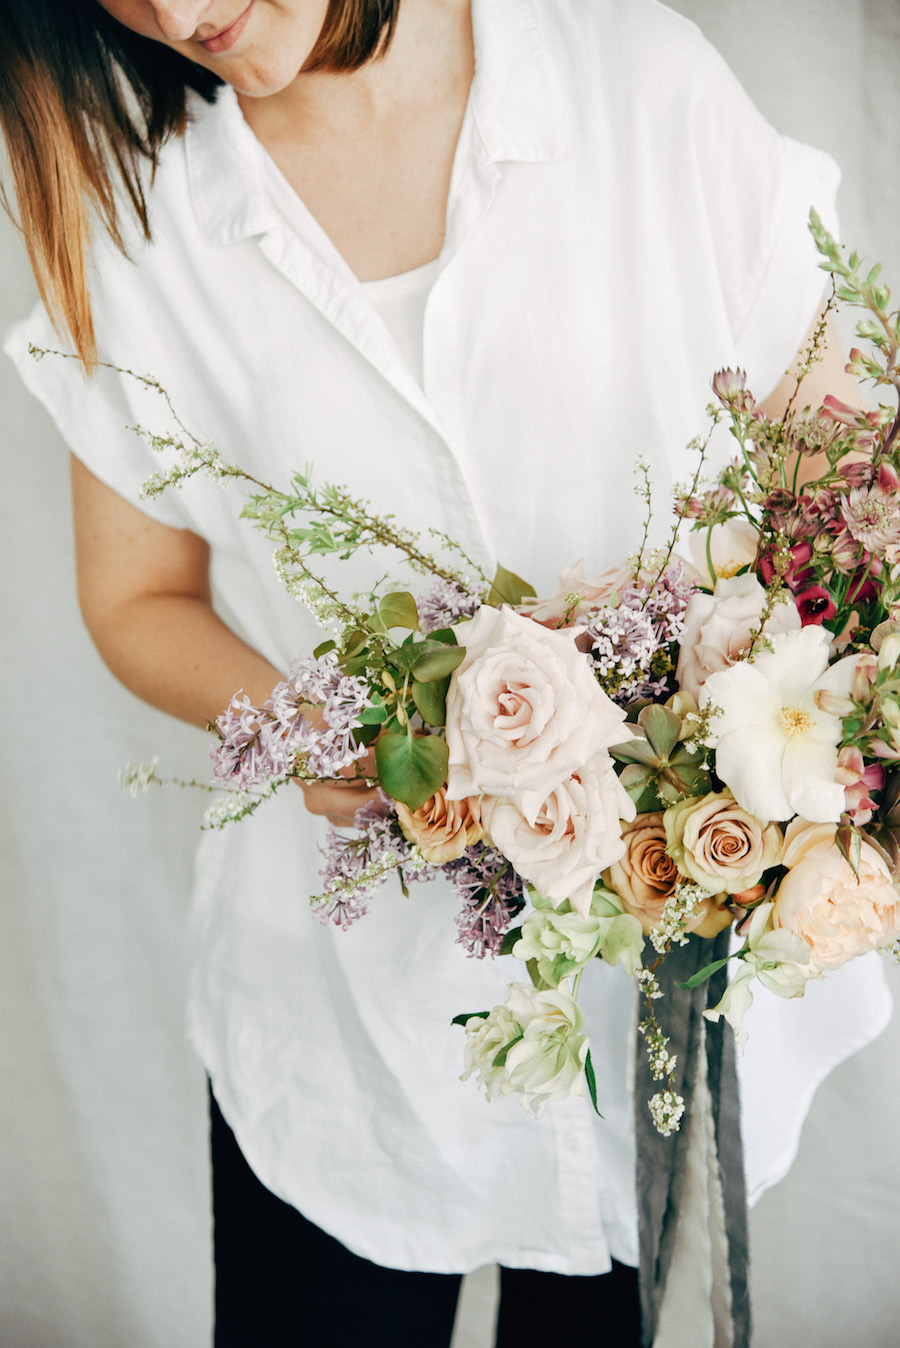 Blooms by Nicole Land of Soil & Stem and ribbons from Frou Frou Chic, now featured on Cottage Hill